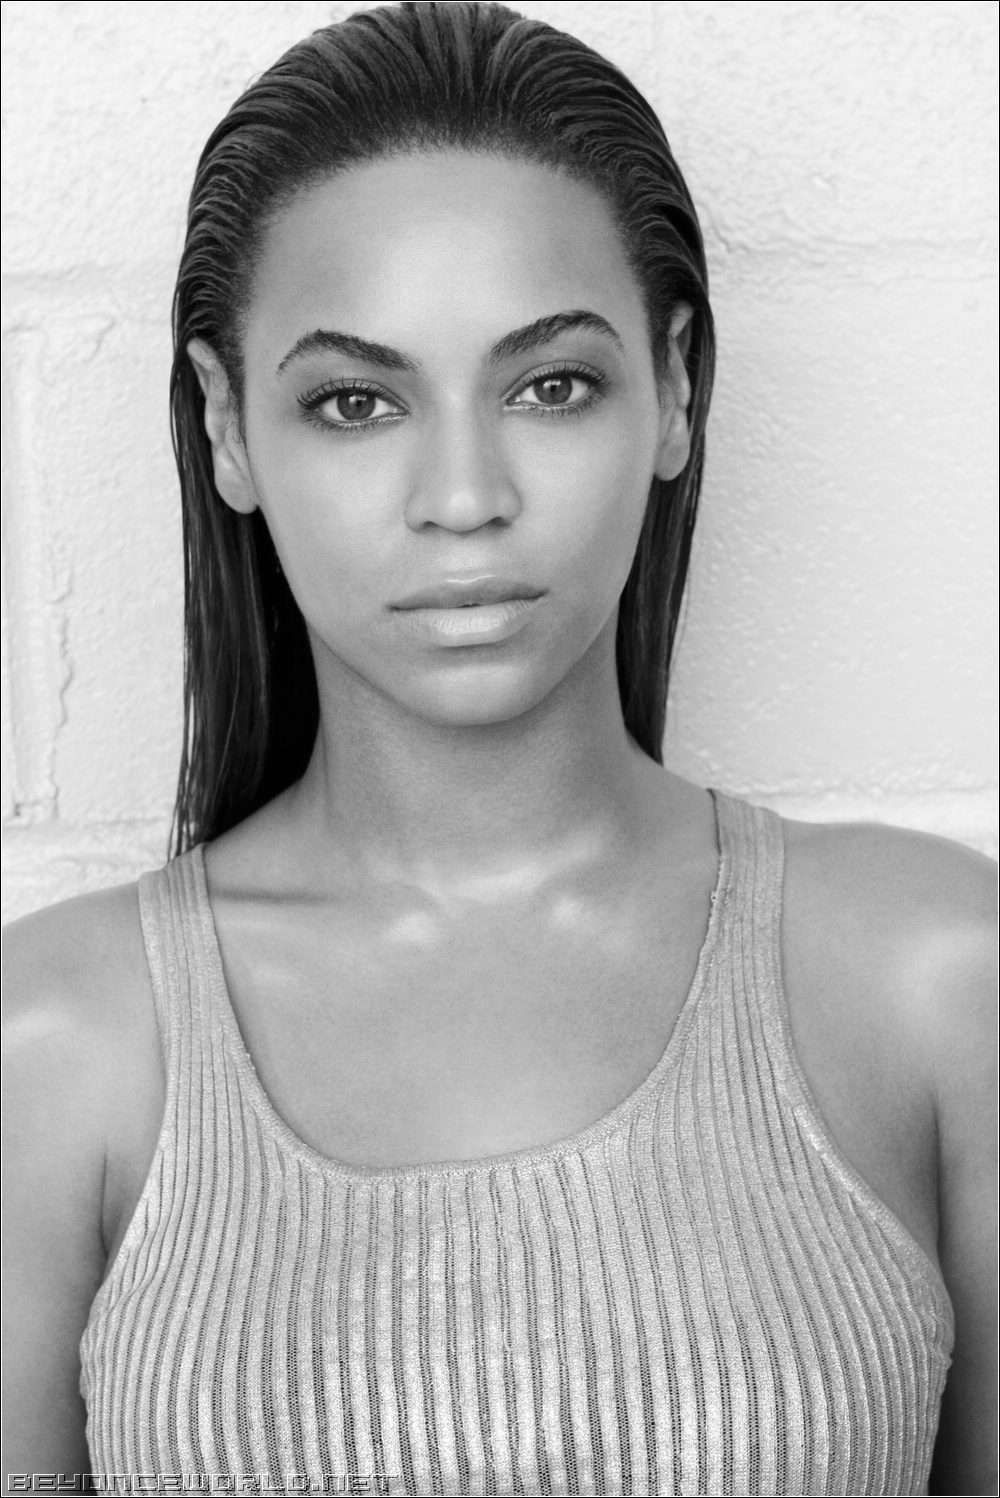 http://www.upscaleswagger.com/wp-content/uploads/2008/10/beyonce-new-promo-pics-3.jpg